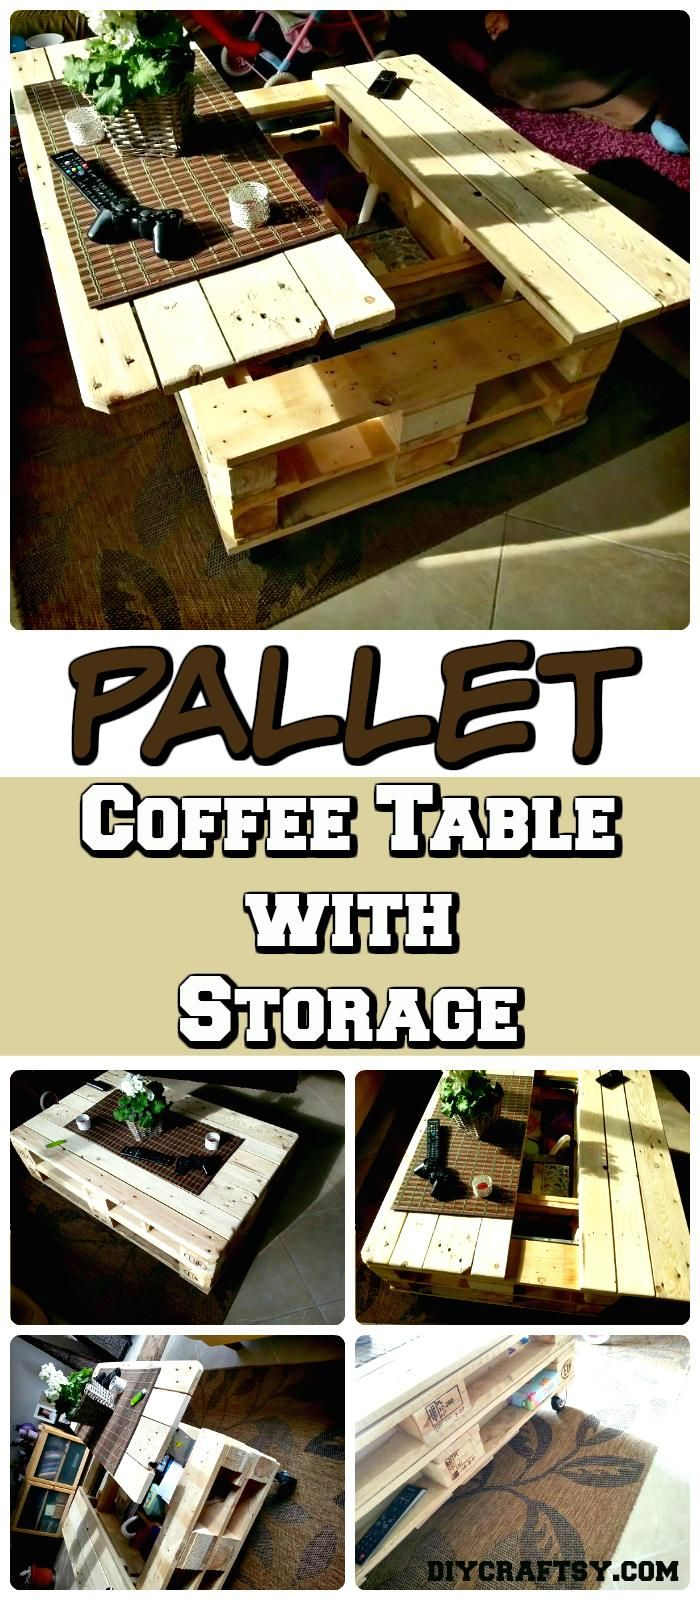 Euro Pallet Lift-Top Coffee Table – Offers a Secret Stash - 150 Best DIY Pallet Projects and Pallet Furniture Crafts - Page 6 of 75 - DIY & Crafts